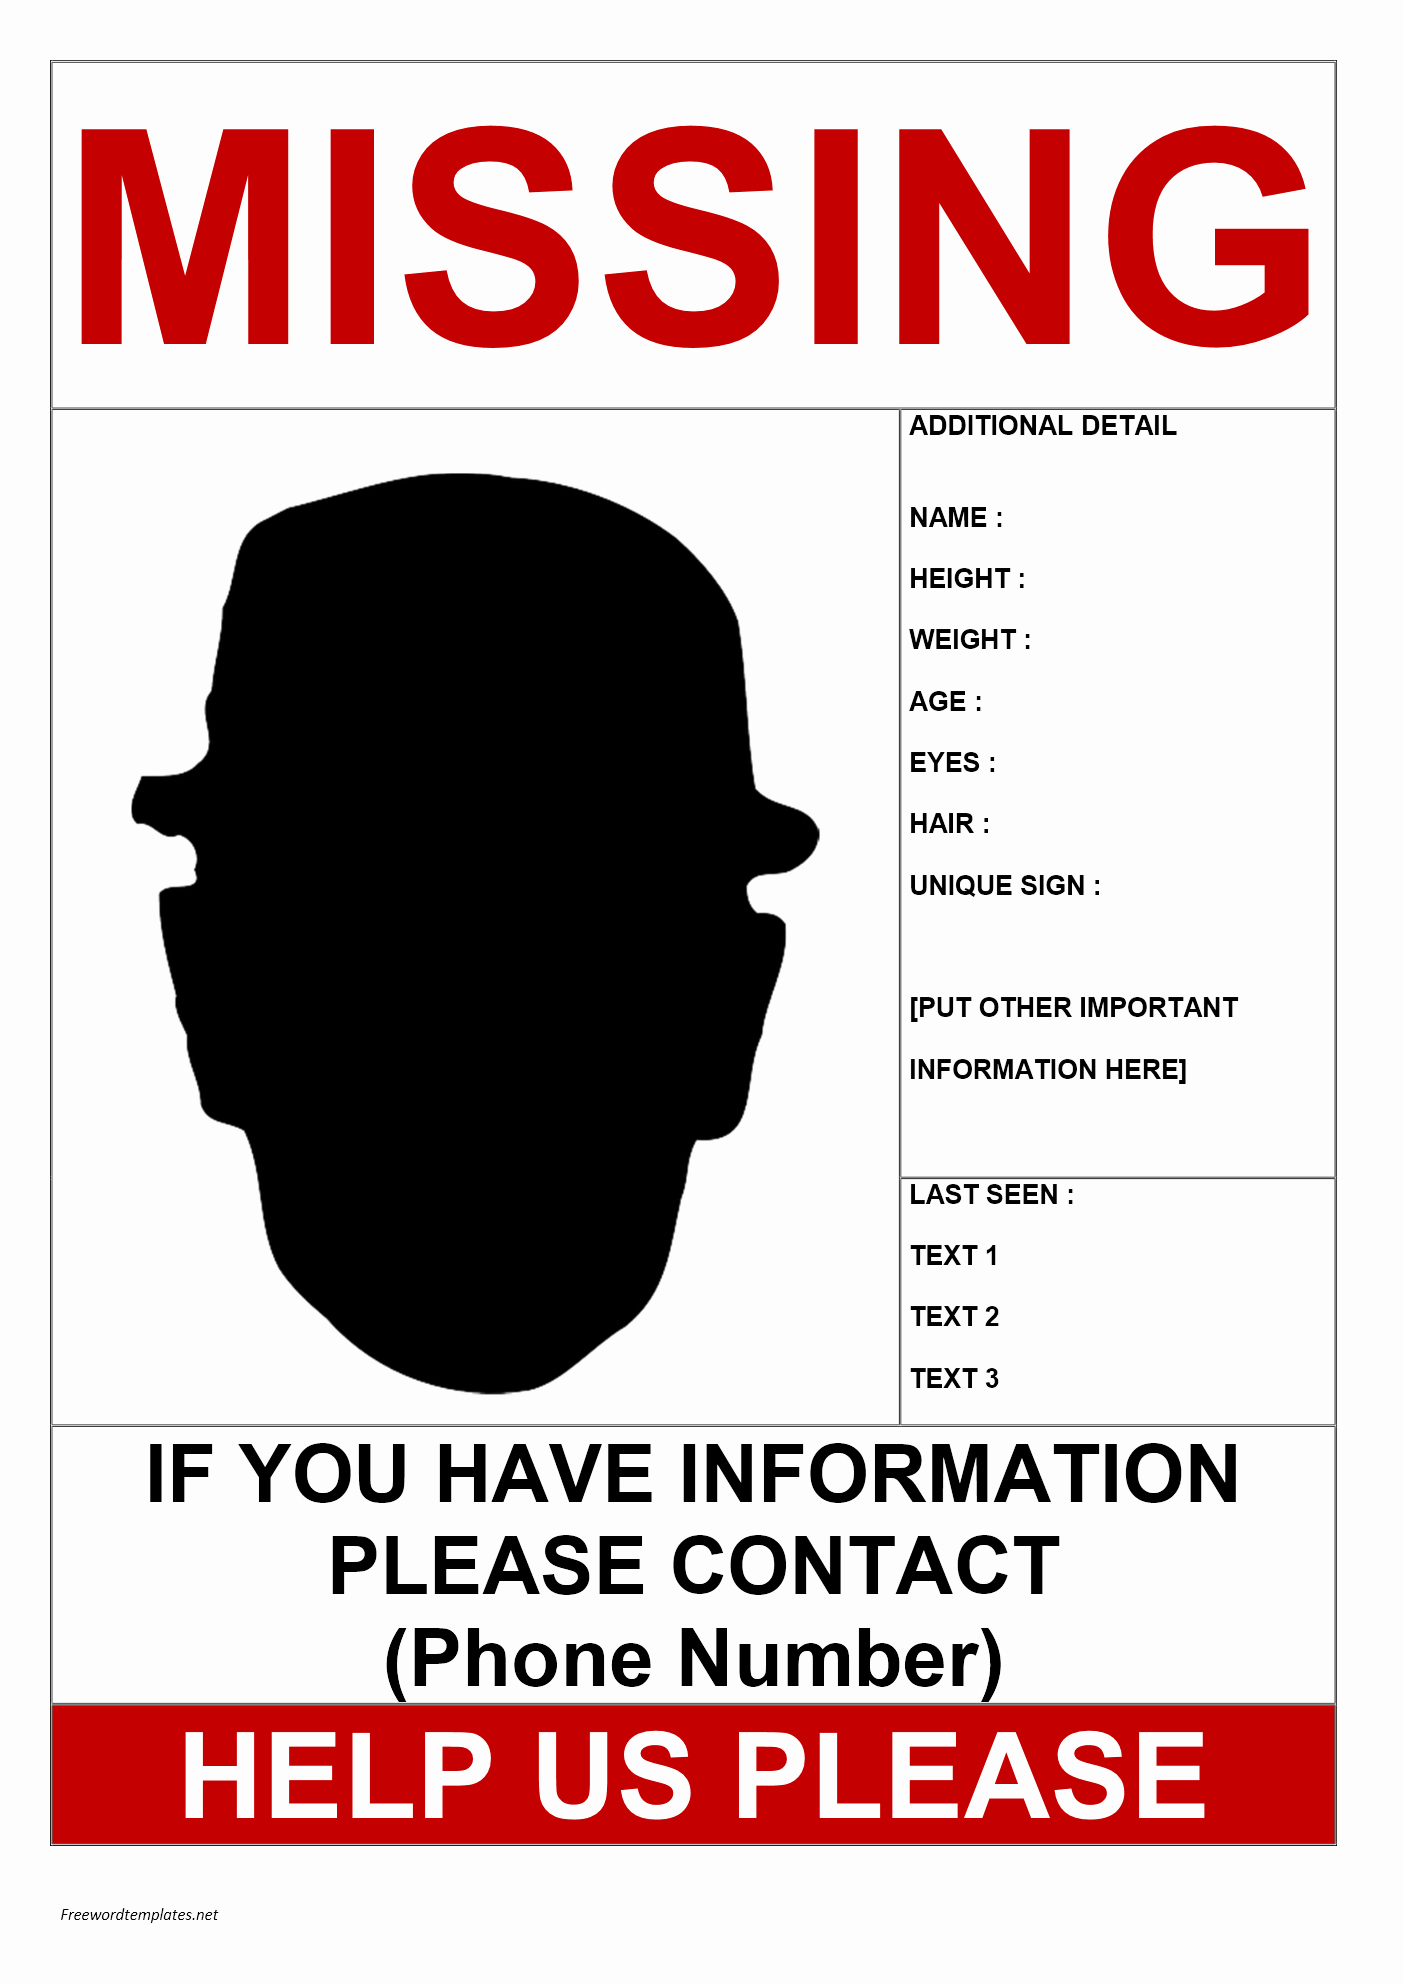 Missing Persons Flyer Template New Missing Person Poster Template